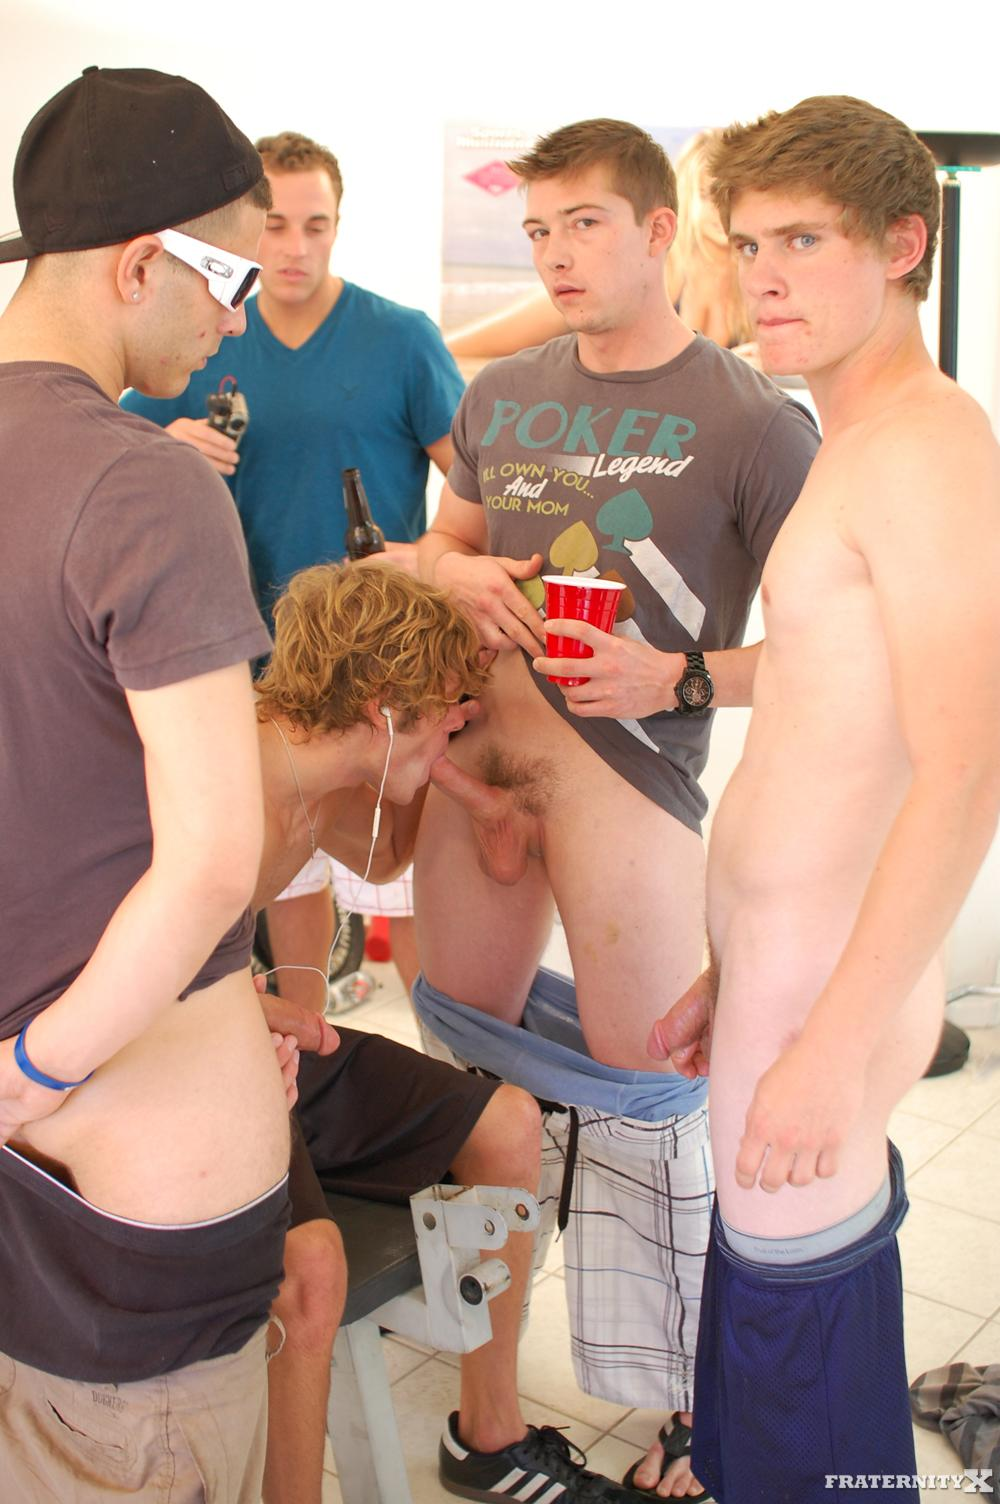 Fraternity-X-Cum-Dump-Frat-Guys-Fucking-Bareback-Amateur-Gay-Porn-07 Real Fraternity Brothers Finger Bang and Bareback A Pledge